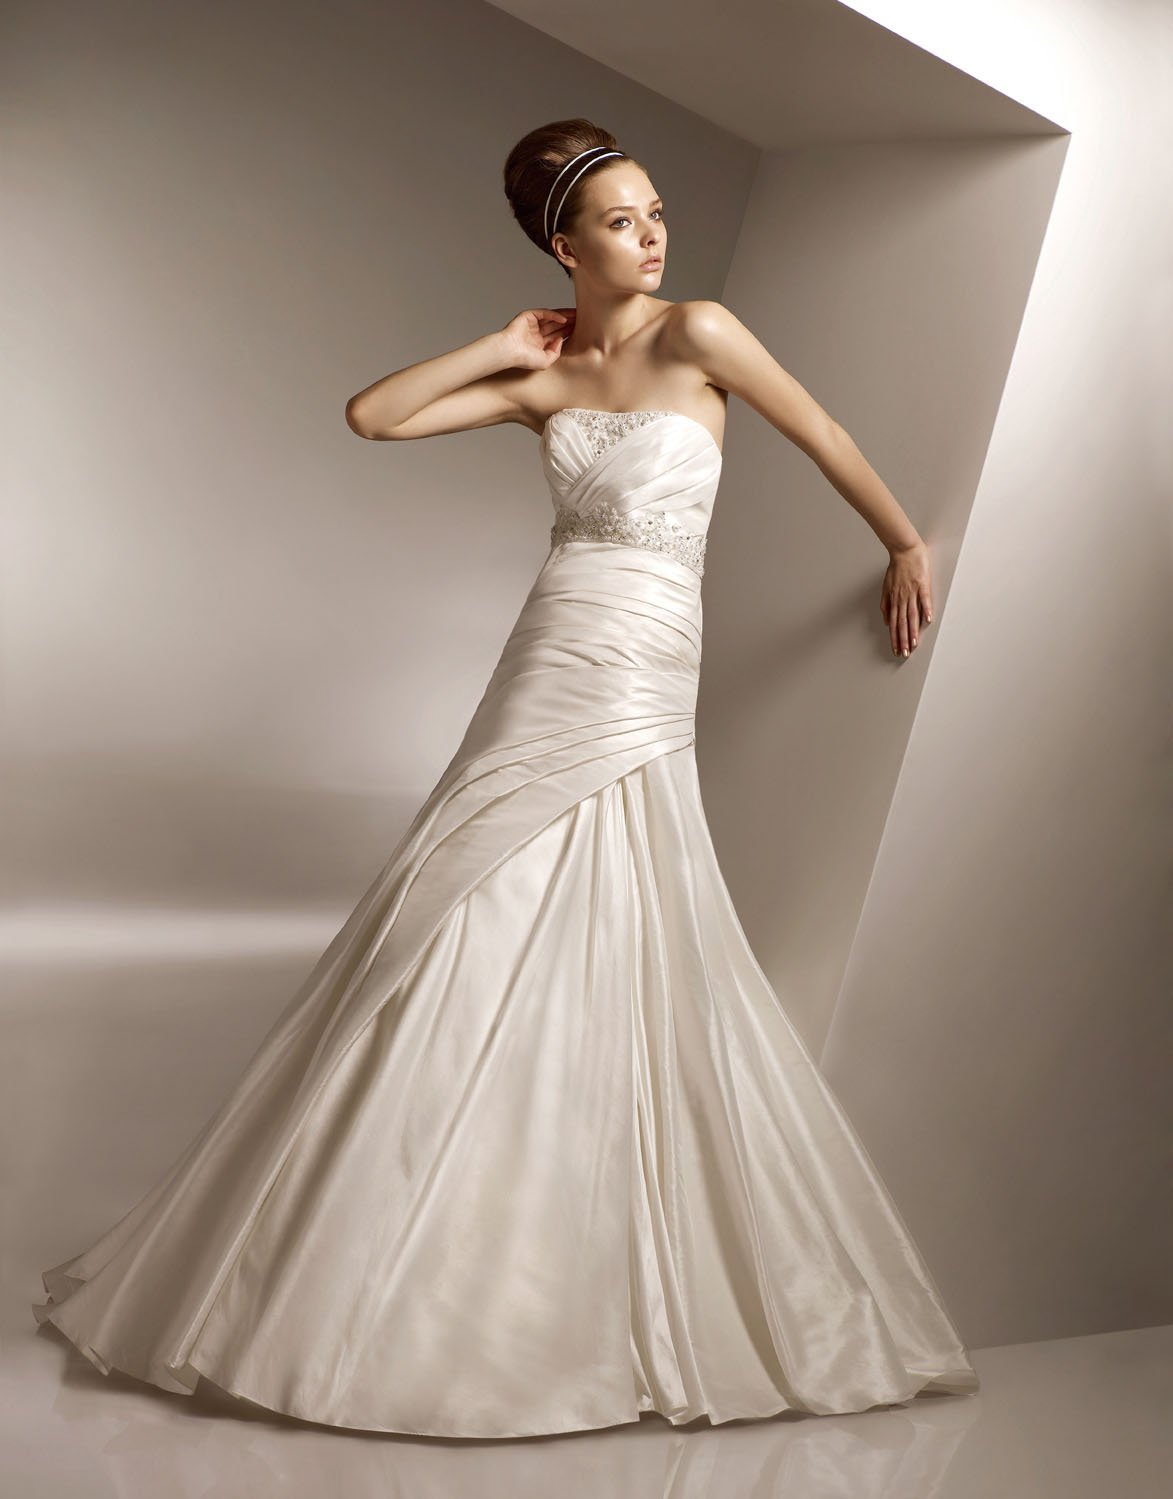 Appliqued Beading Strapless Wedding Dress Bridal Gown